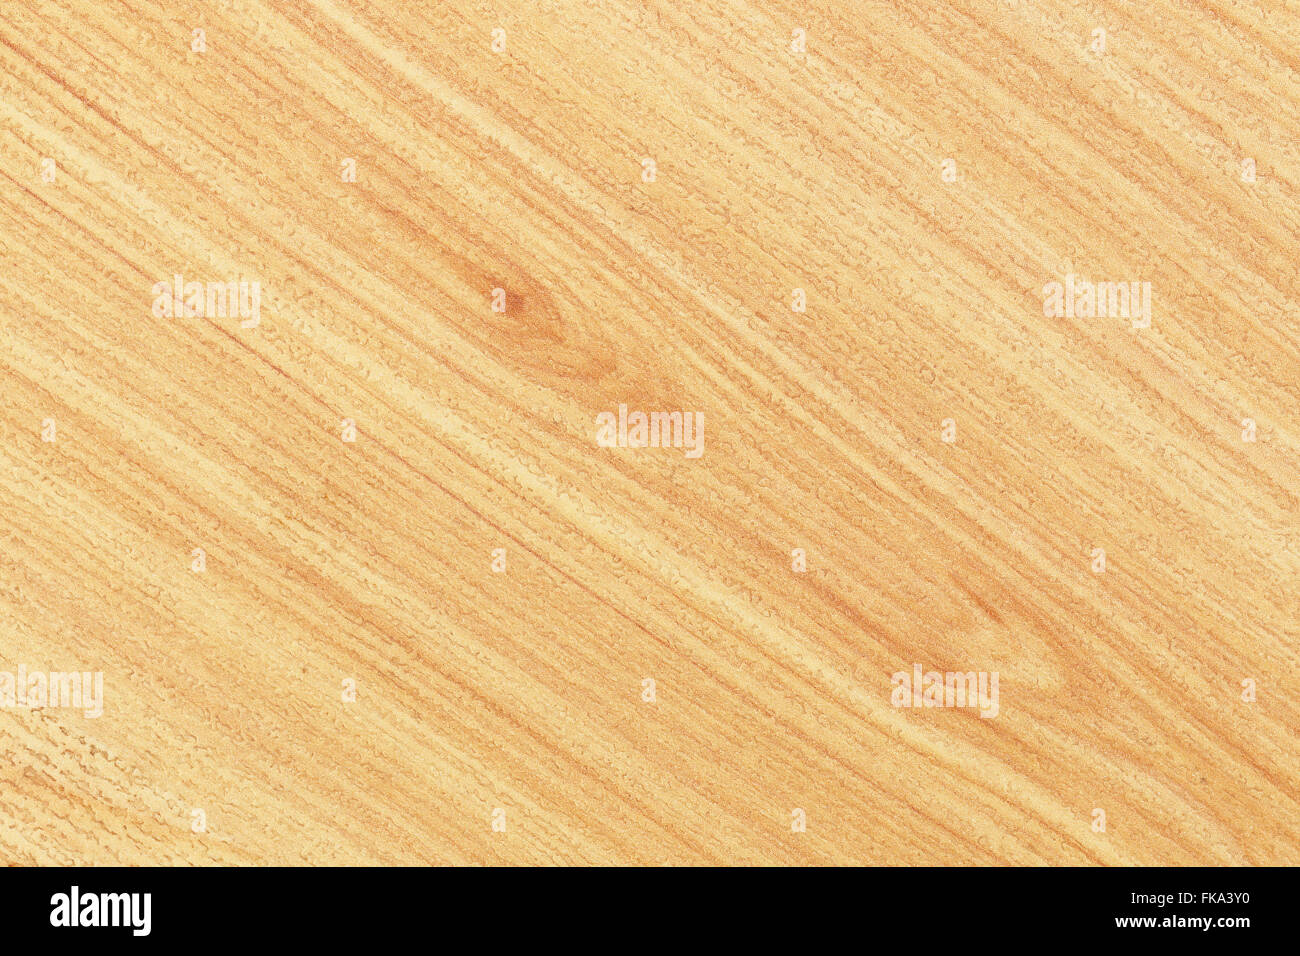 It is Laminated wood texture for pattern and background. - Stock Image